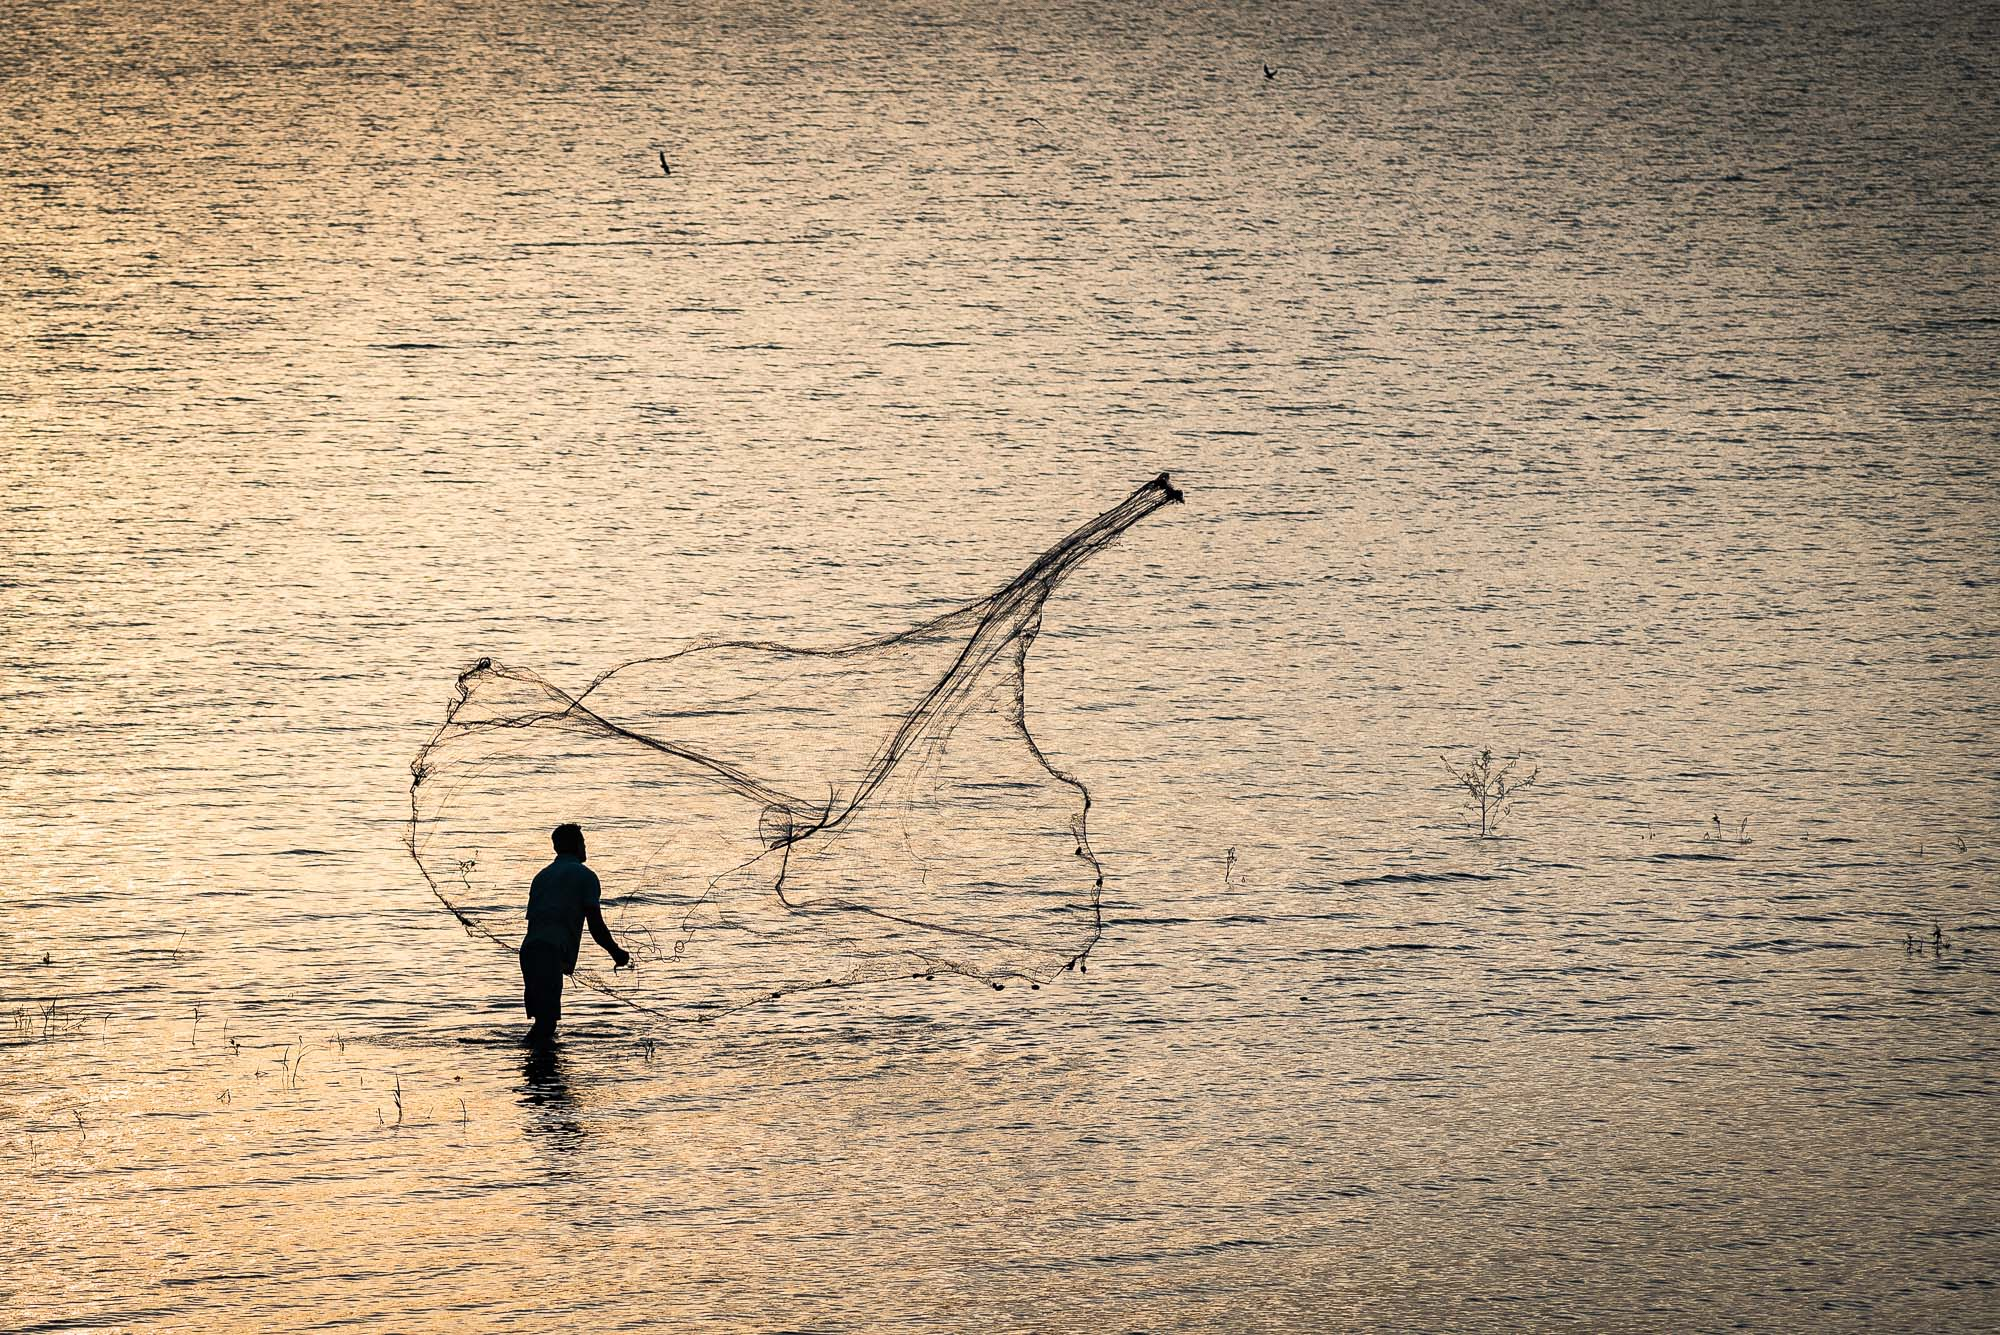 Fisherman, Polonnaruwa lake